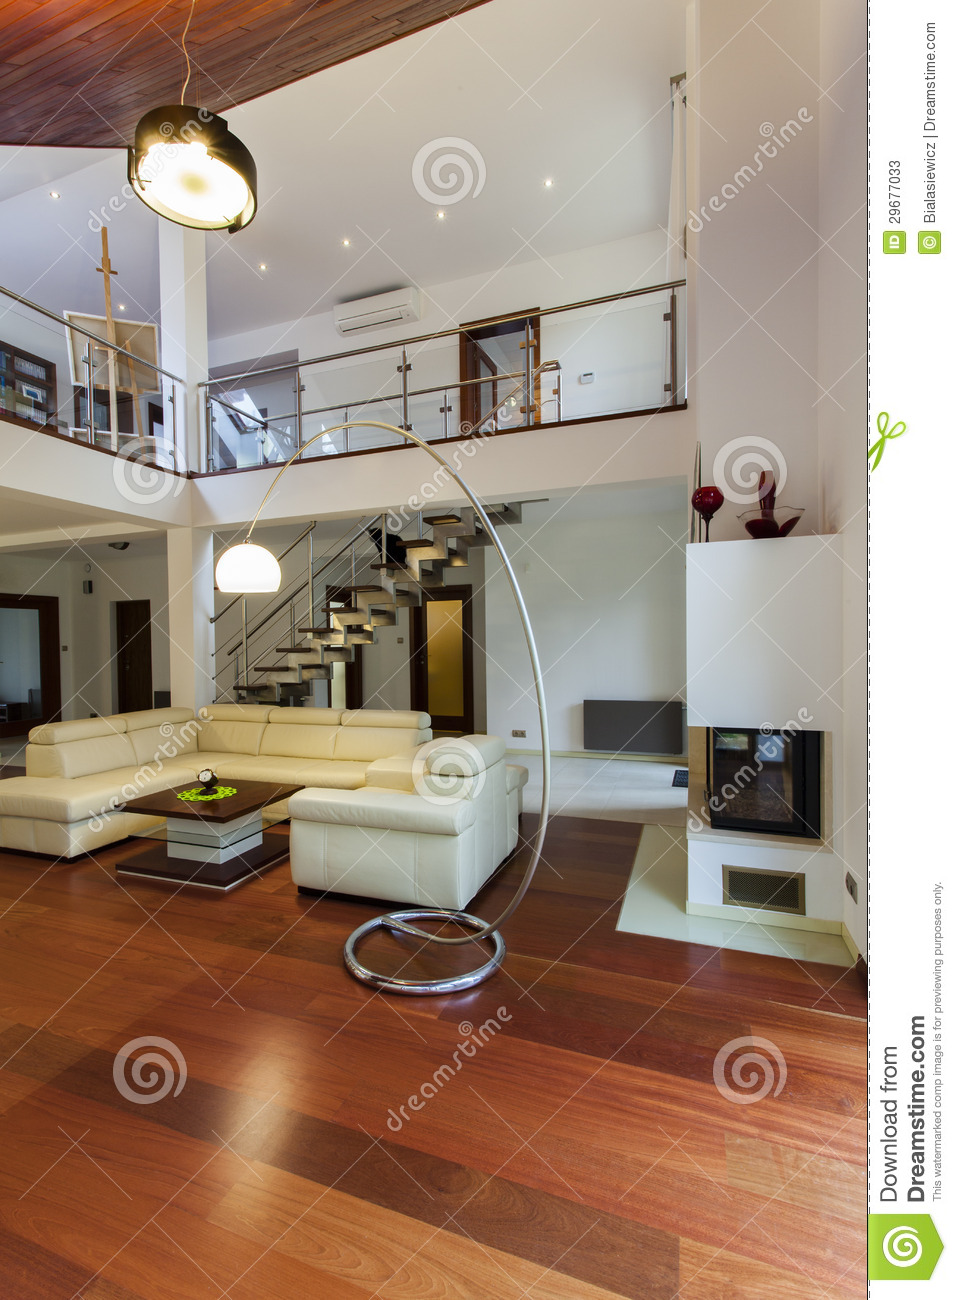 Living Room And Entresol Stock Photos Image 29677033